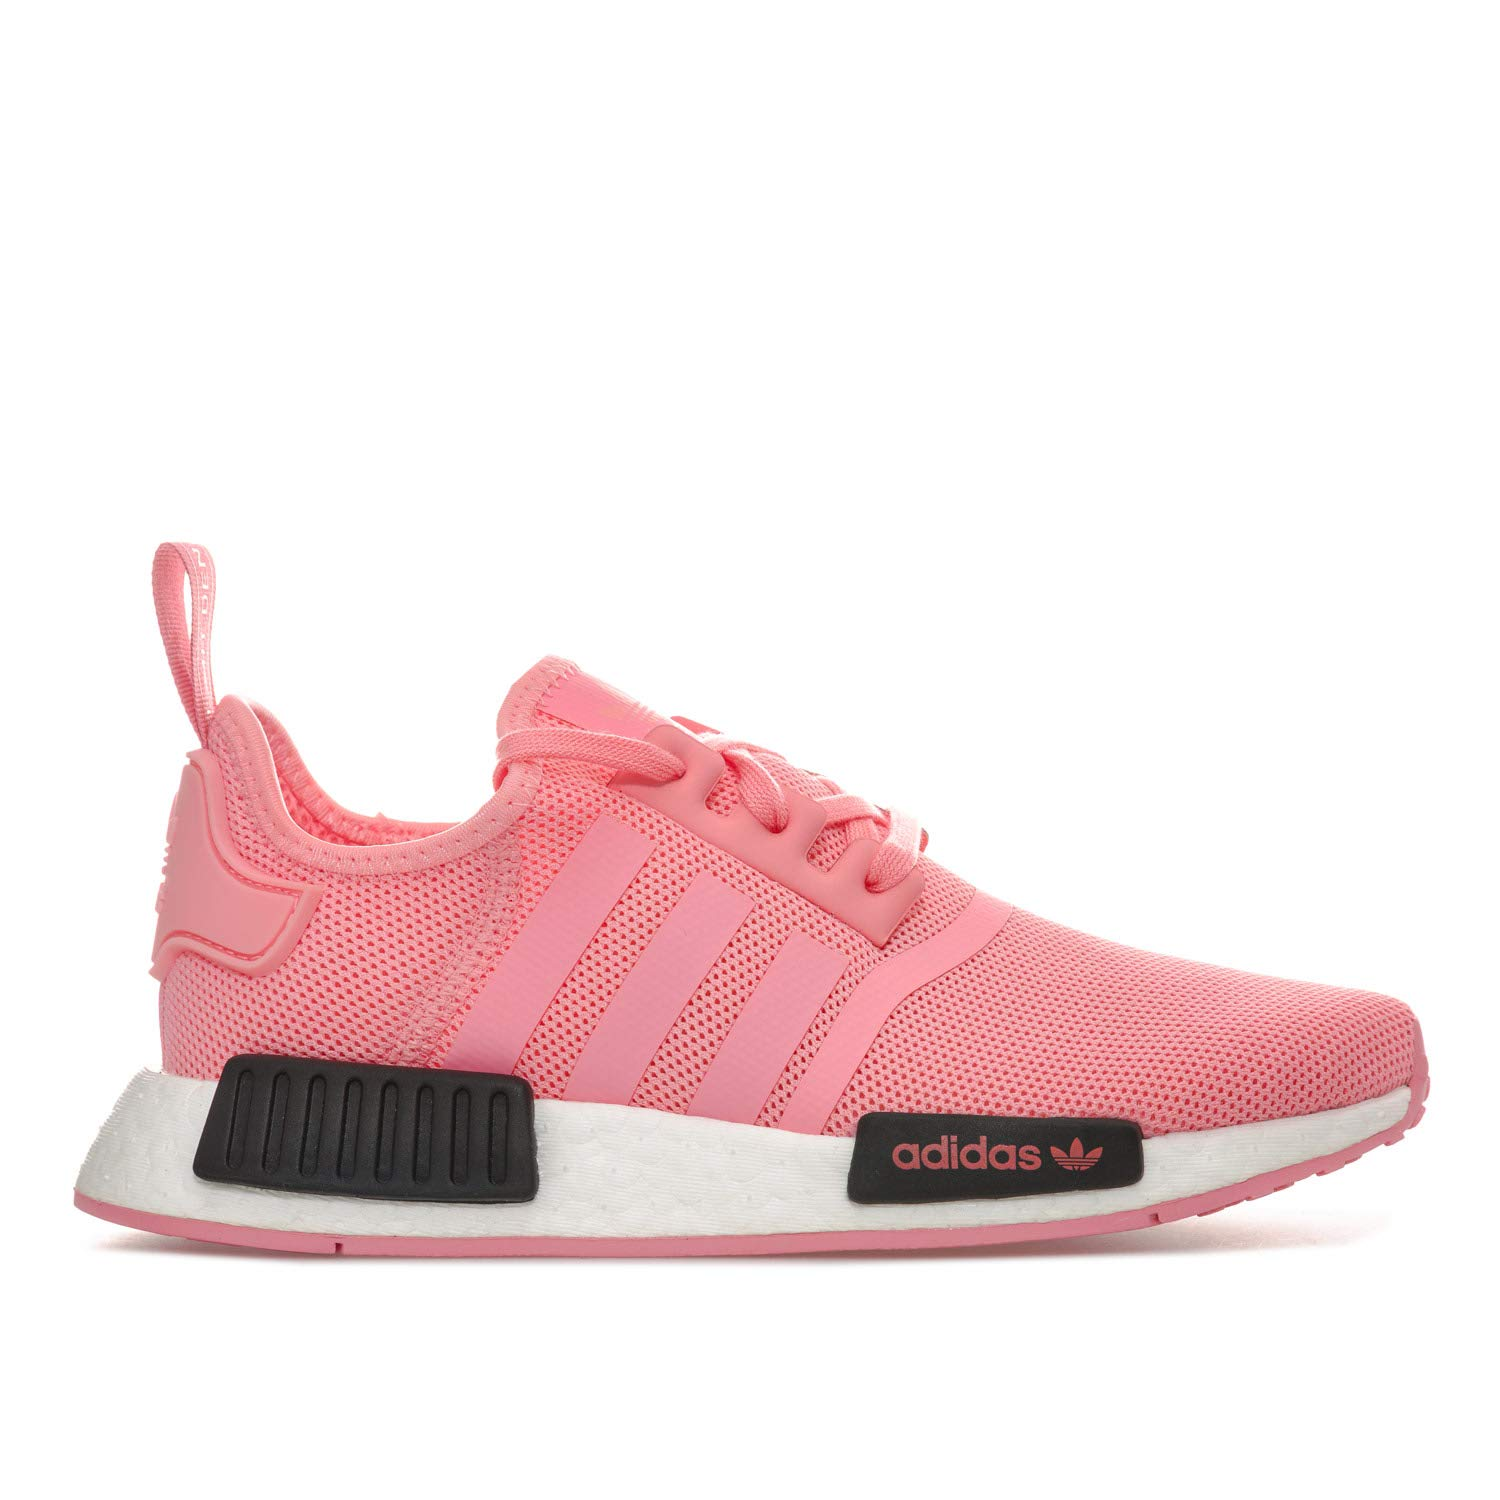 sports shoes 02f23 319c7 Amazon.com | adidas Originals Girl's NMD R1 Trainers US4.5 ...